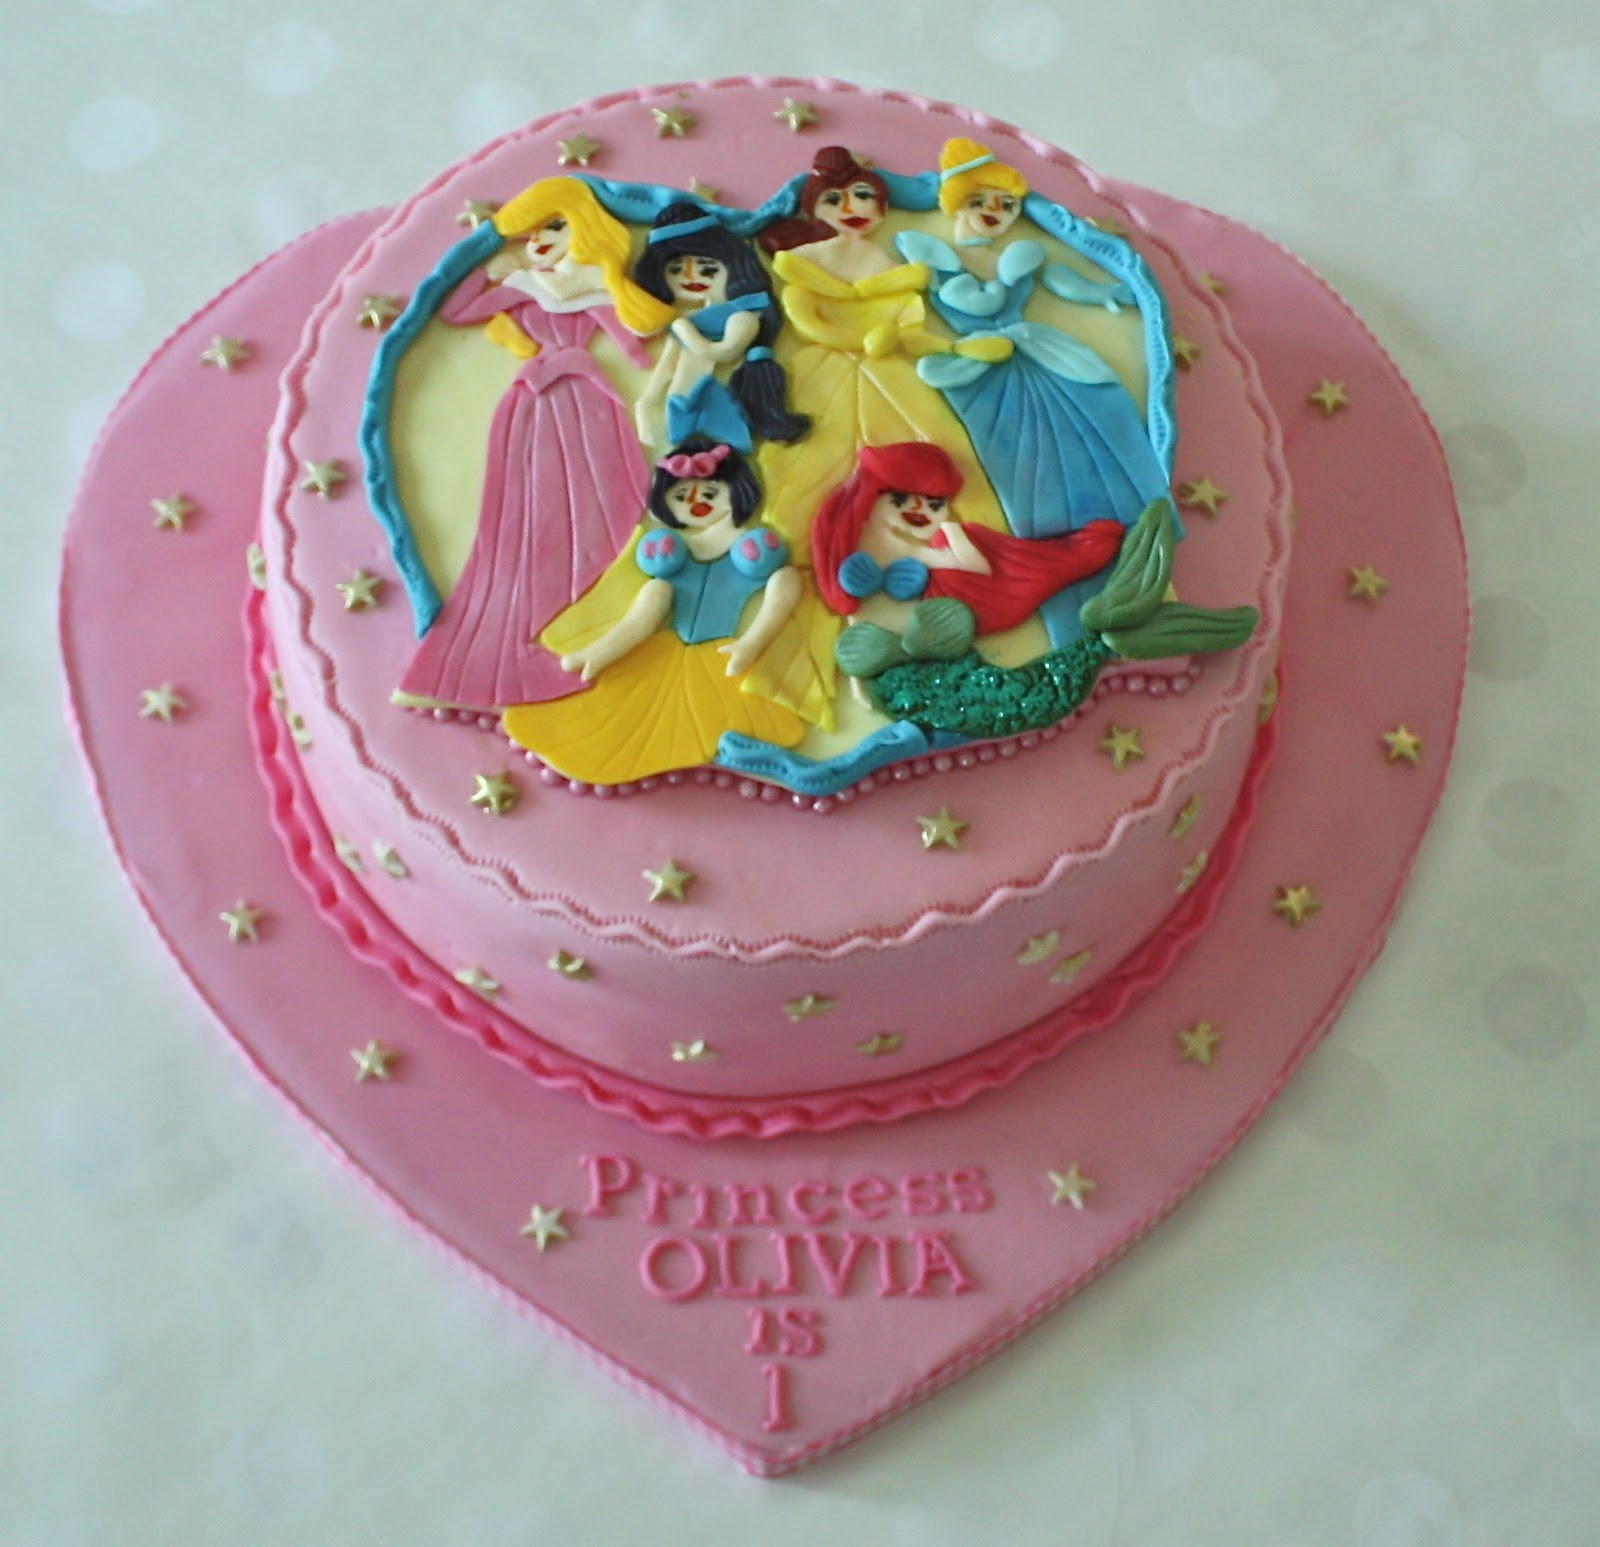 Cake Pictures Disney Princess : -: DISNEY PRINCESS CAKE